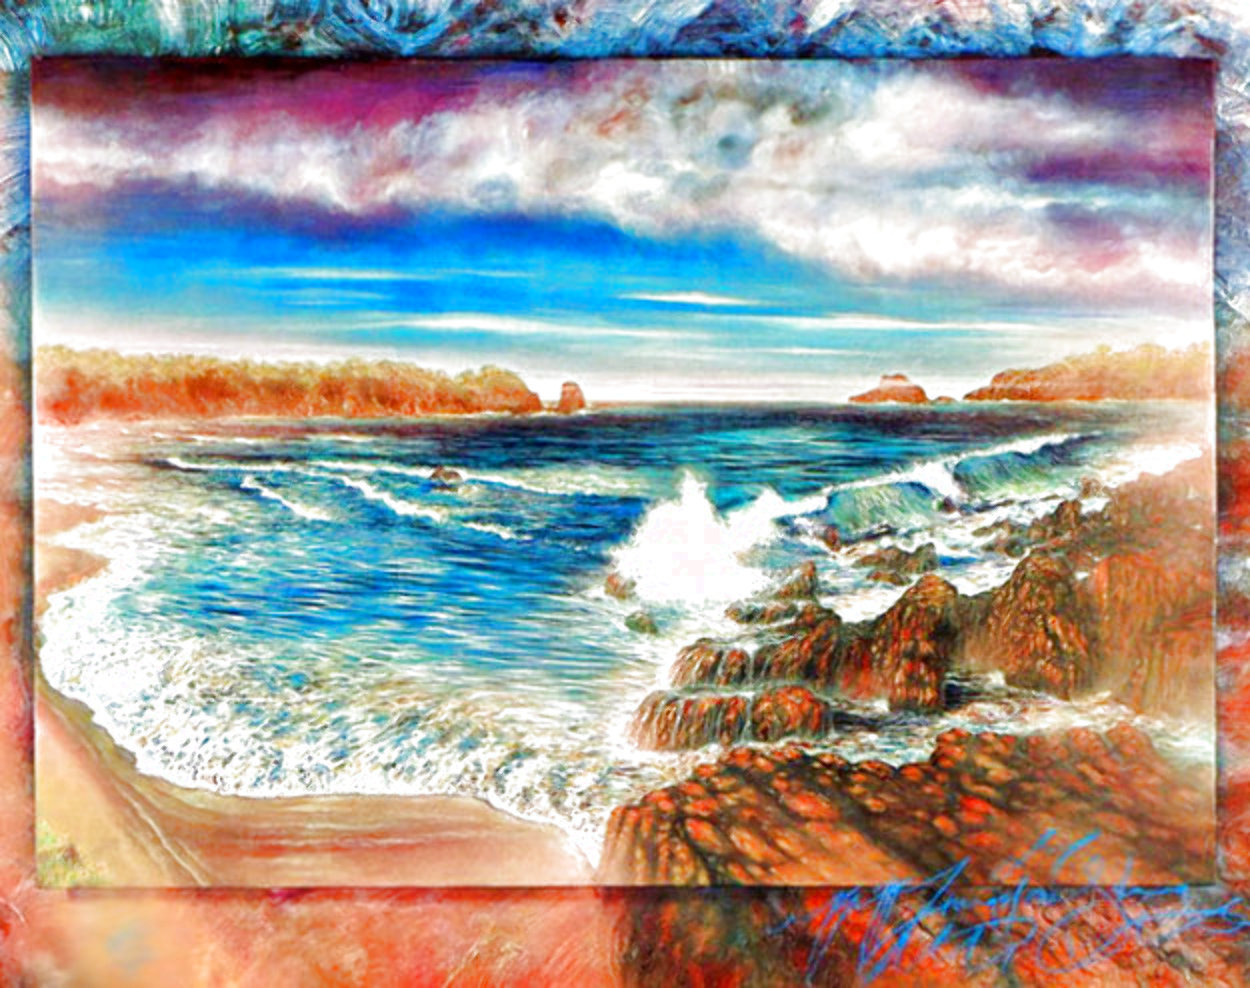 Surreal Sea AP 1990 Super Huge Limited Edition Print by Brett Livingstone Strong